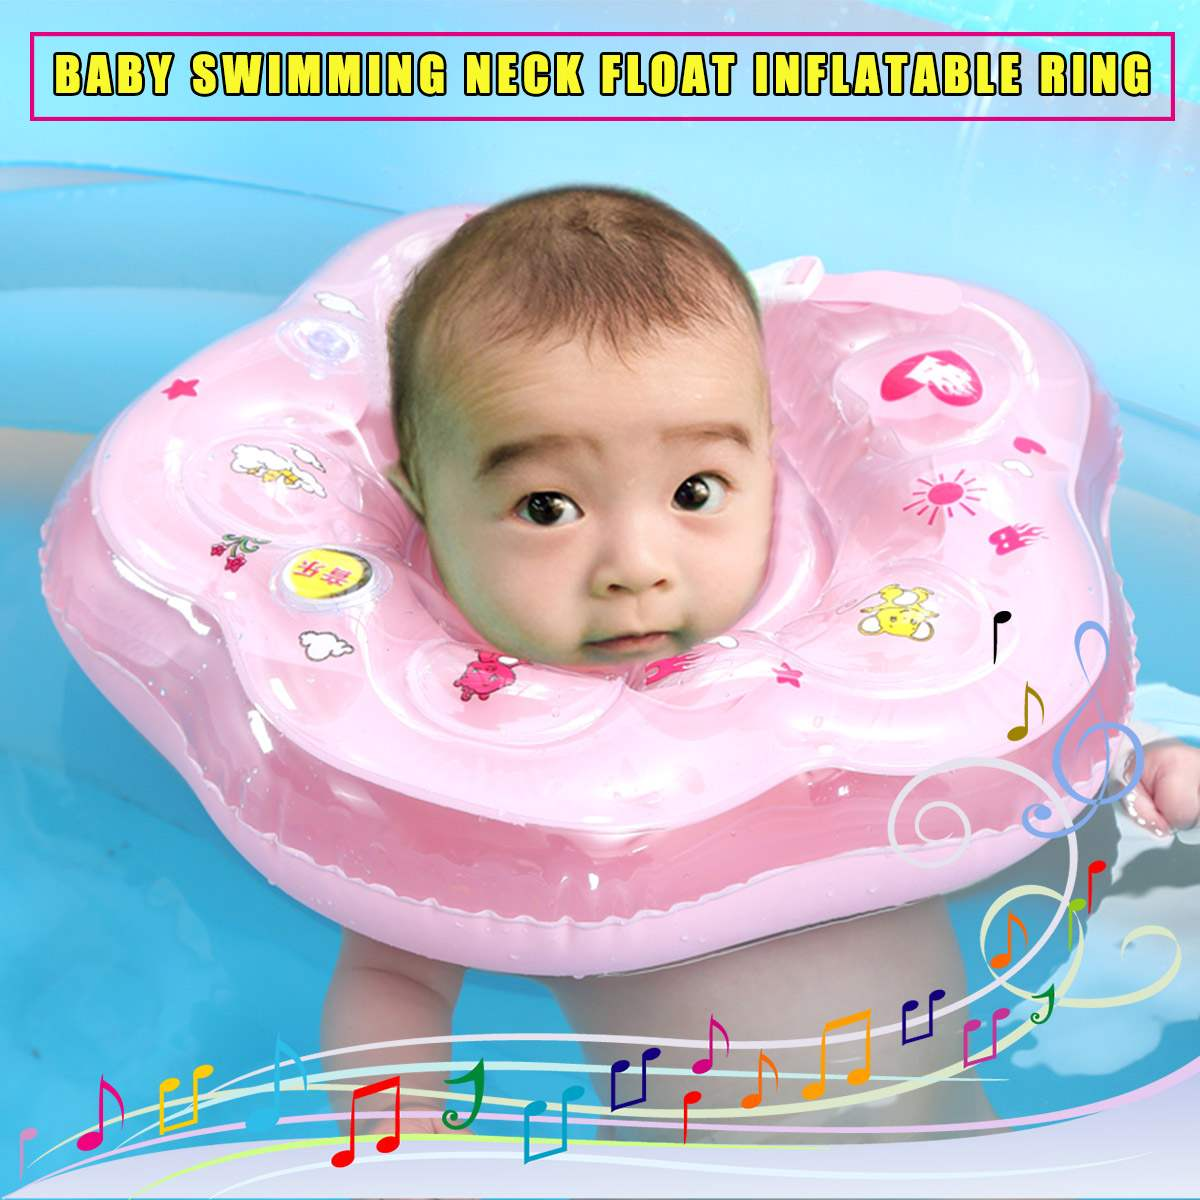 IPRee Safety Infant Baby Swimming Neck Float Music Ring Bath Inflatable Toy